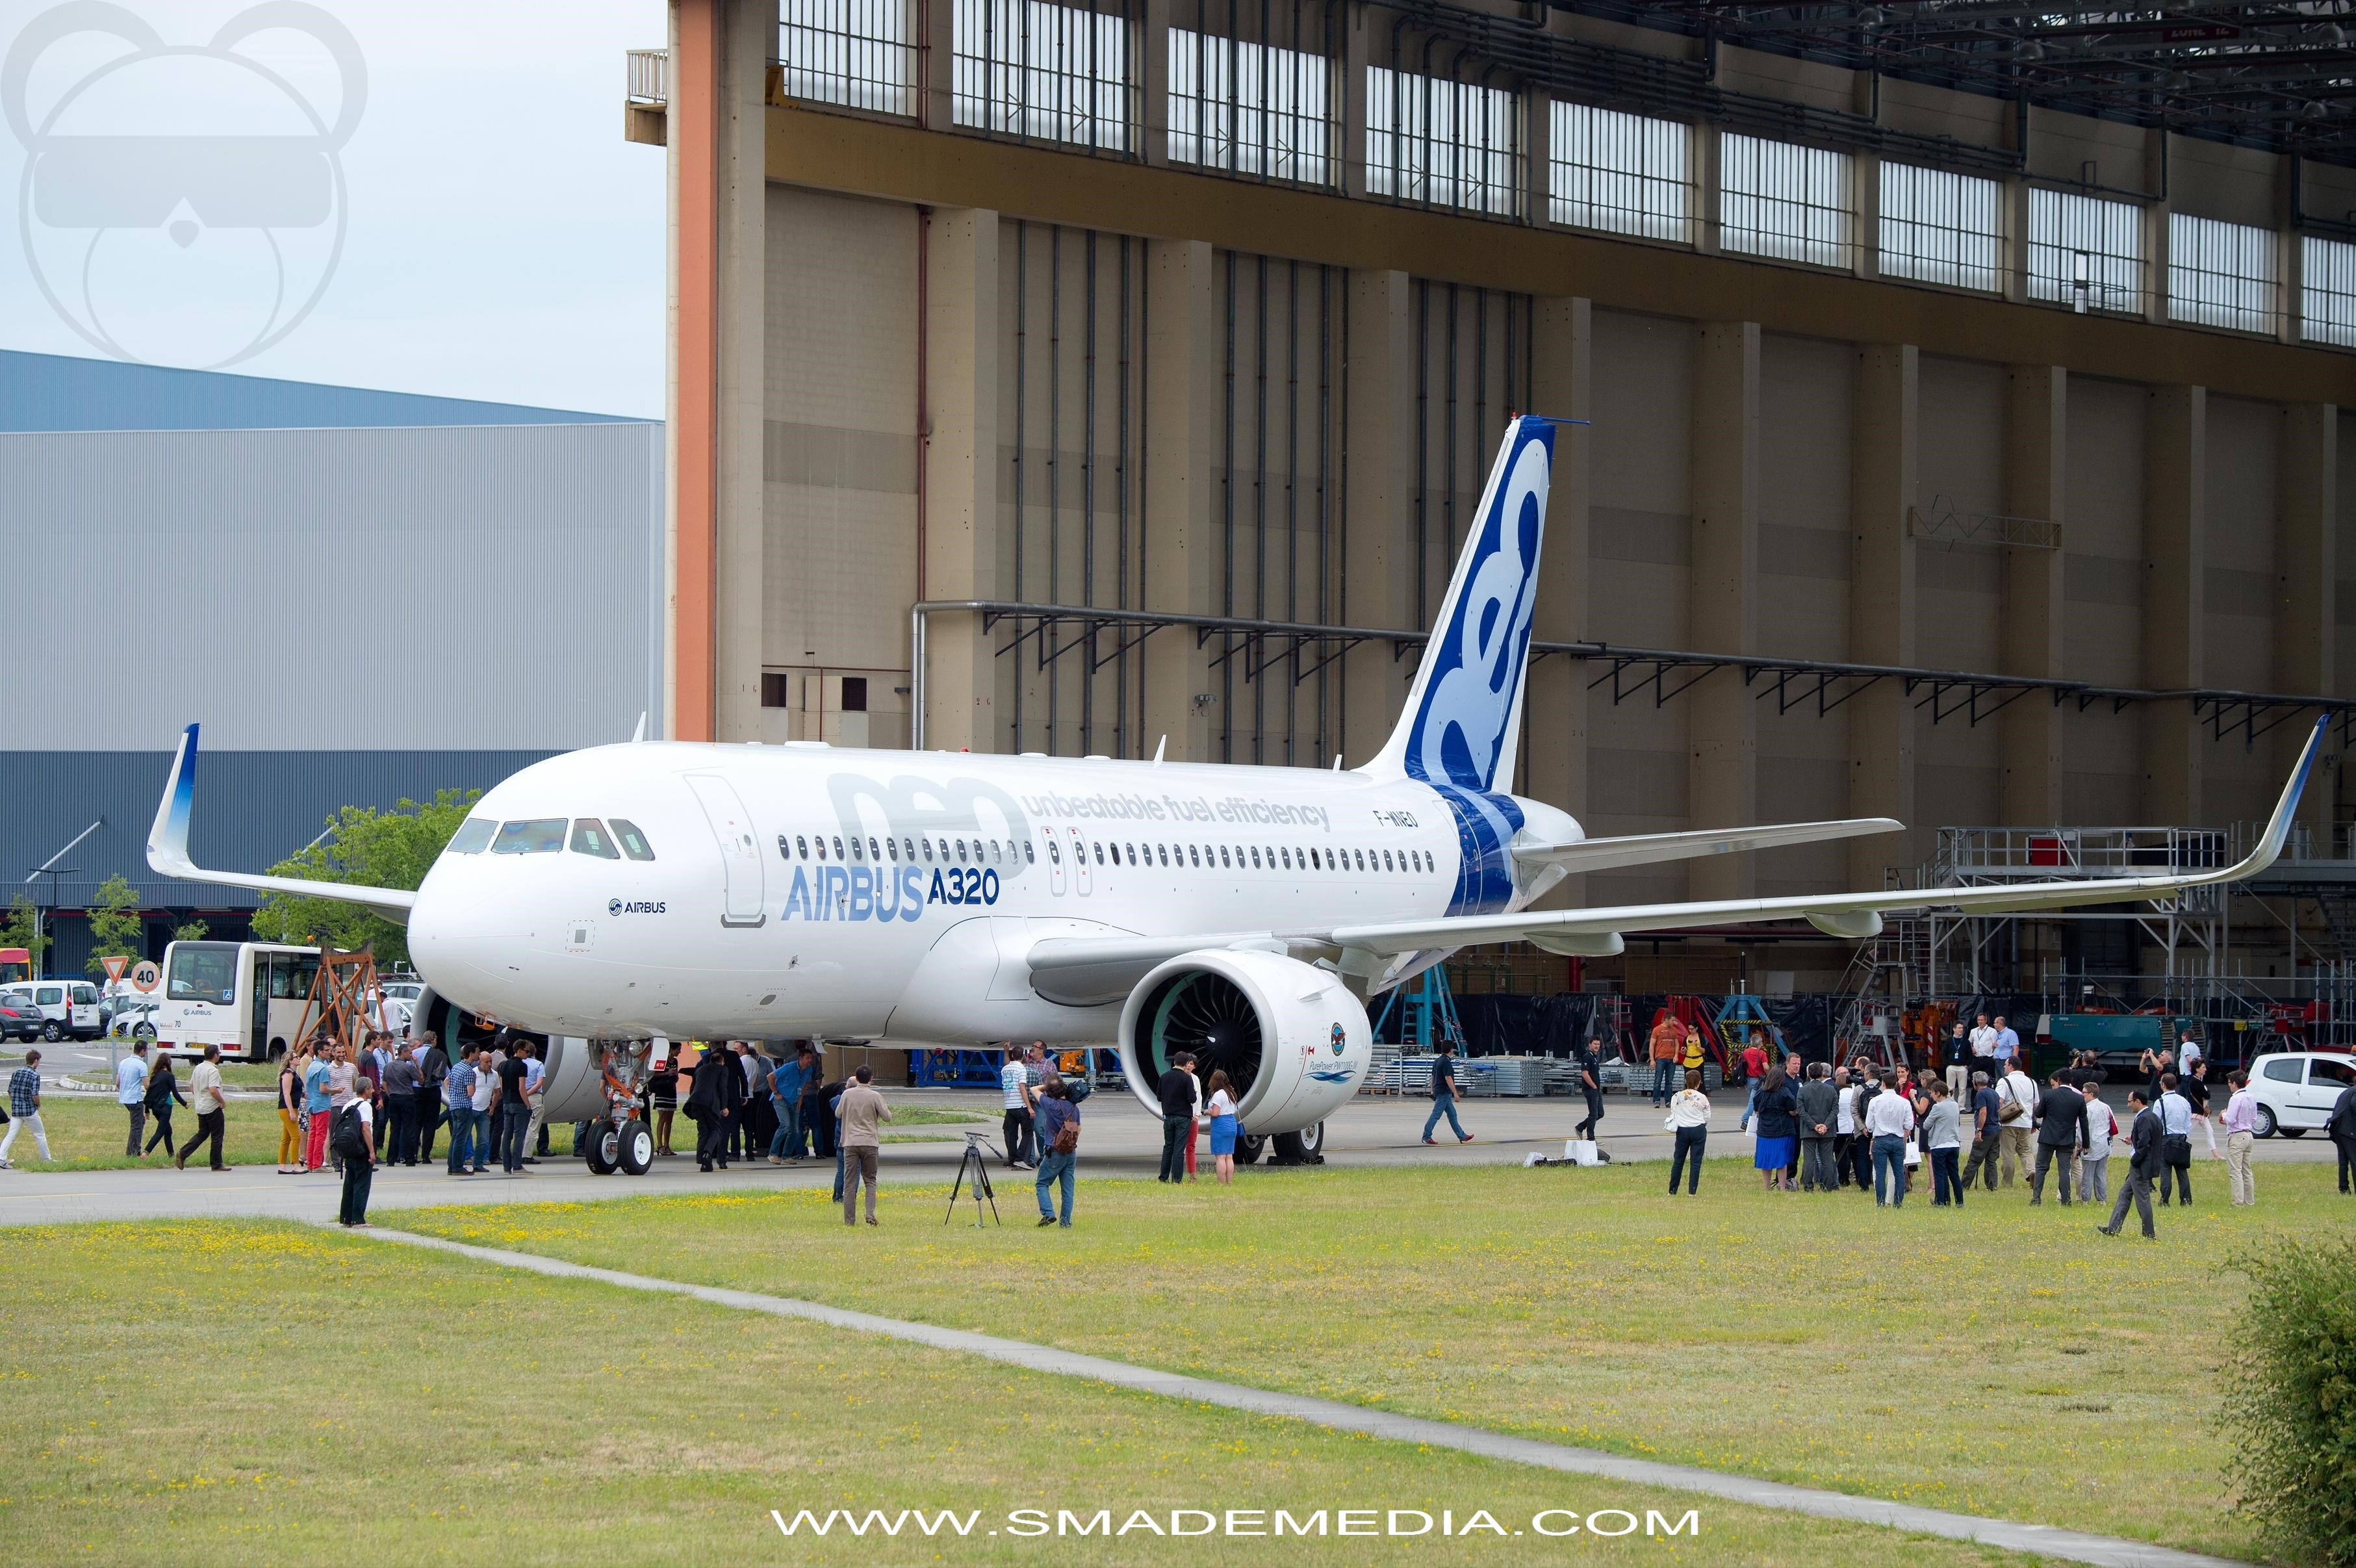 SMADE - Airbus A320neo Roll Out - WWW.SMADEMEDIA (11)